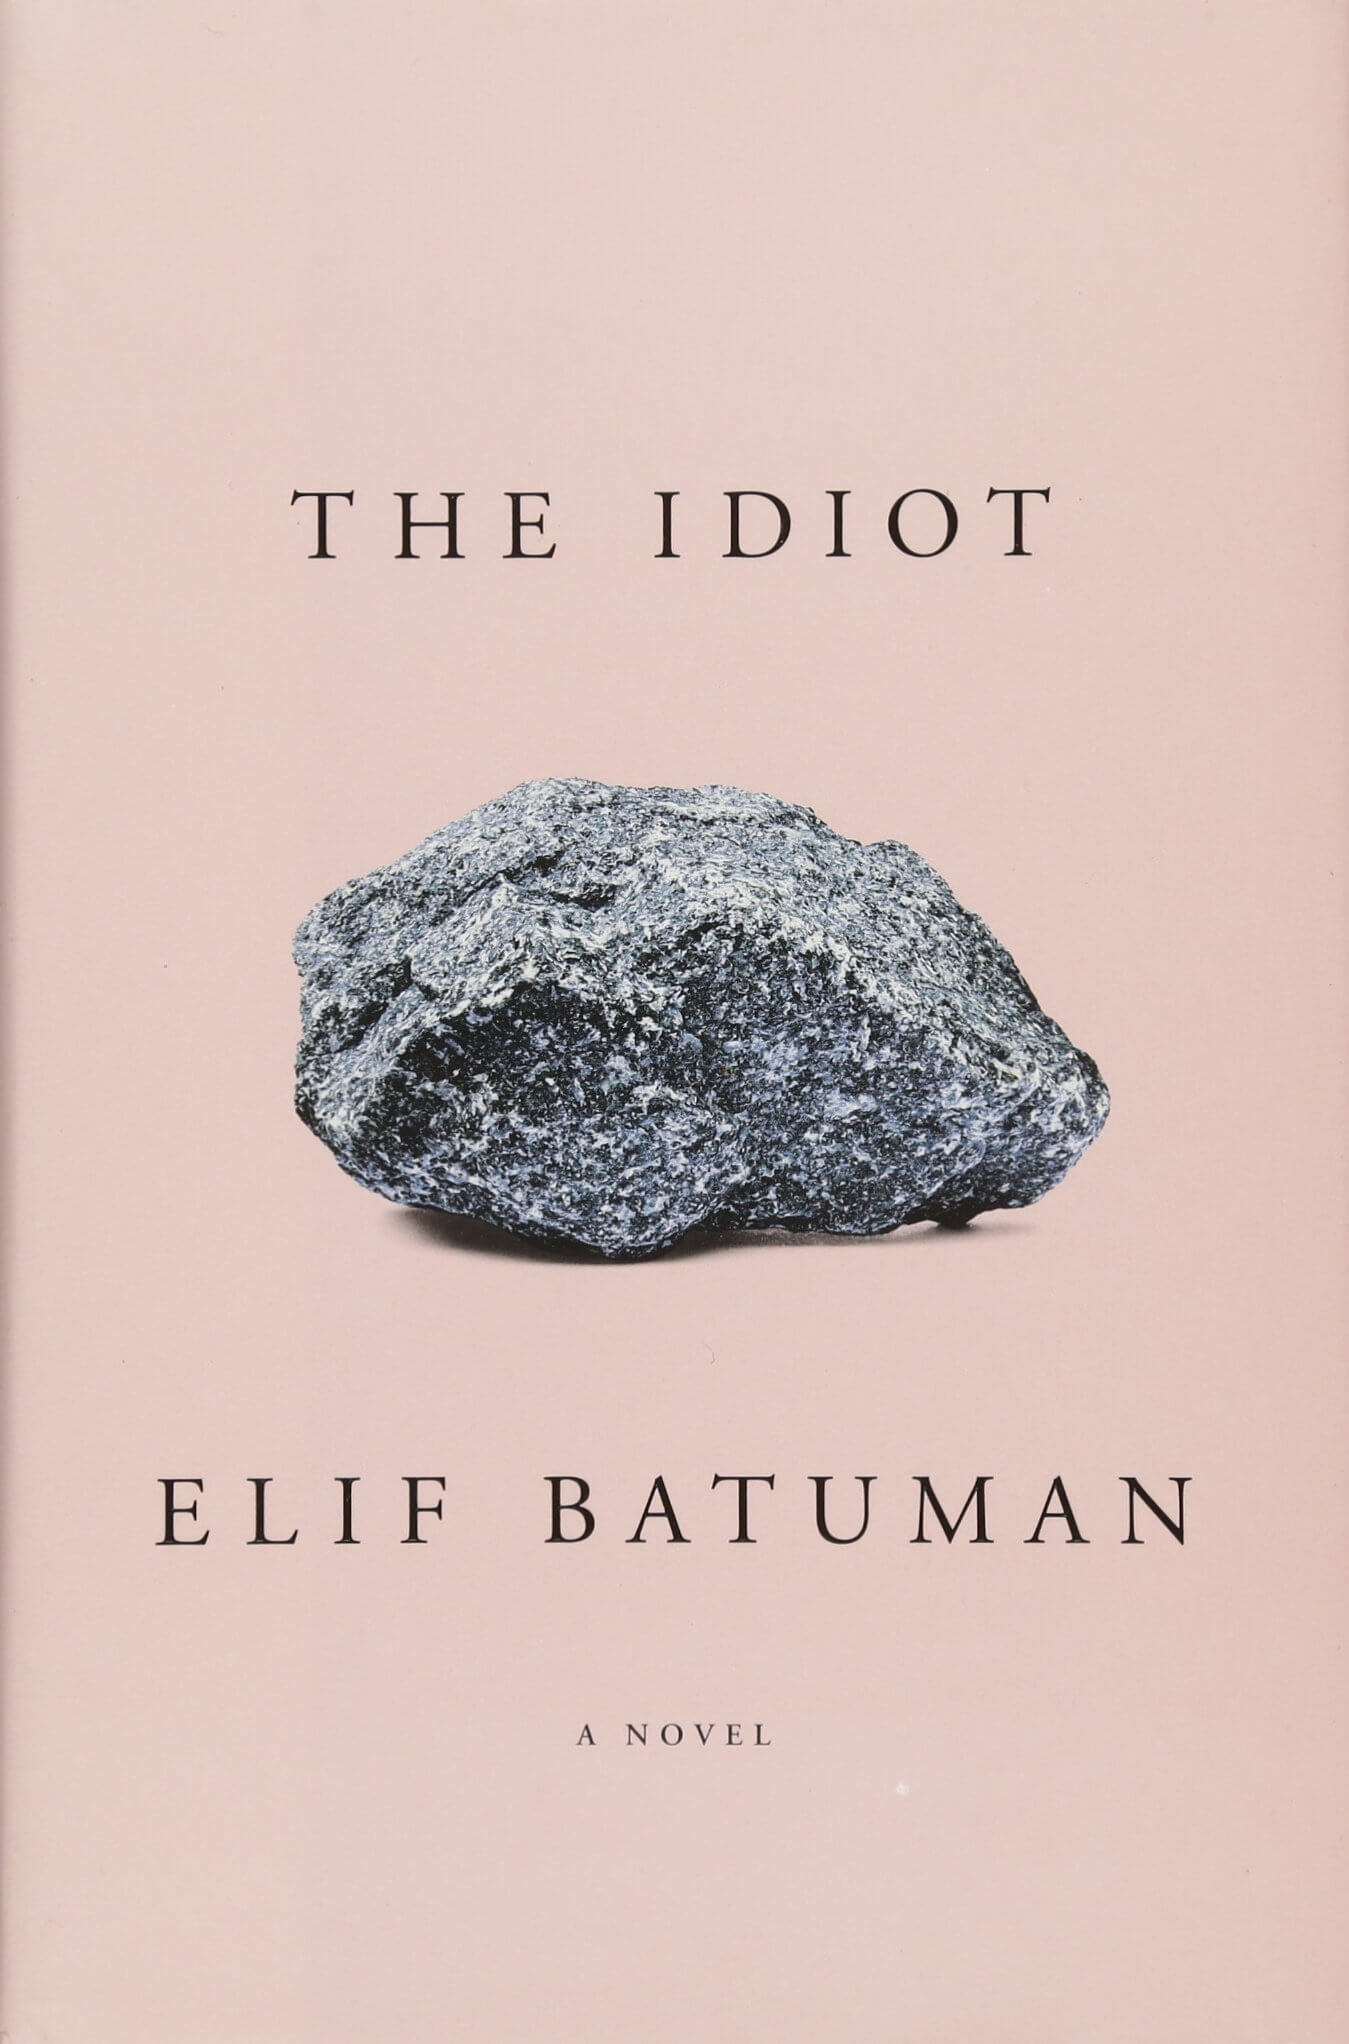 The Idiot book cover image